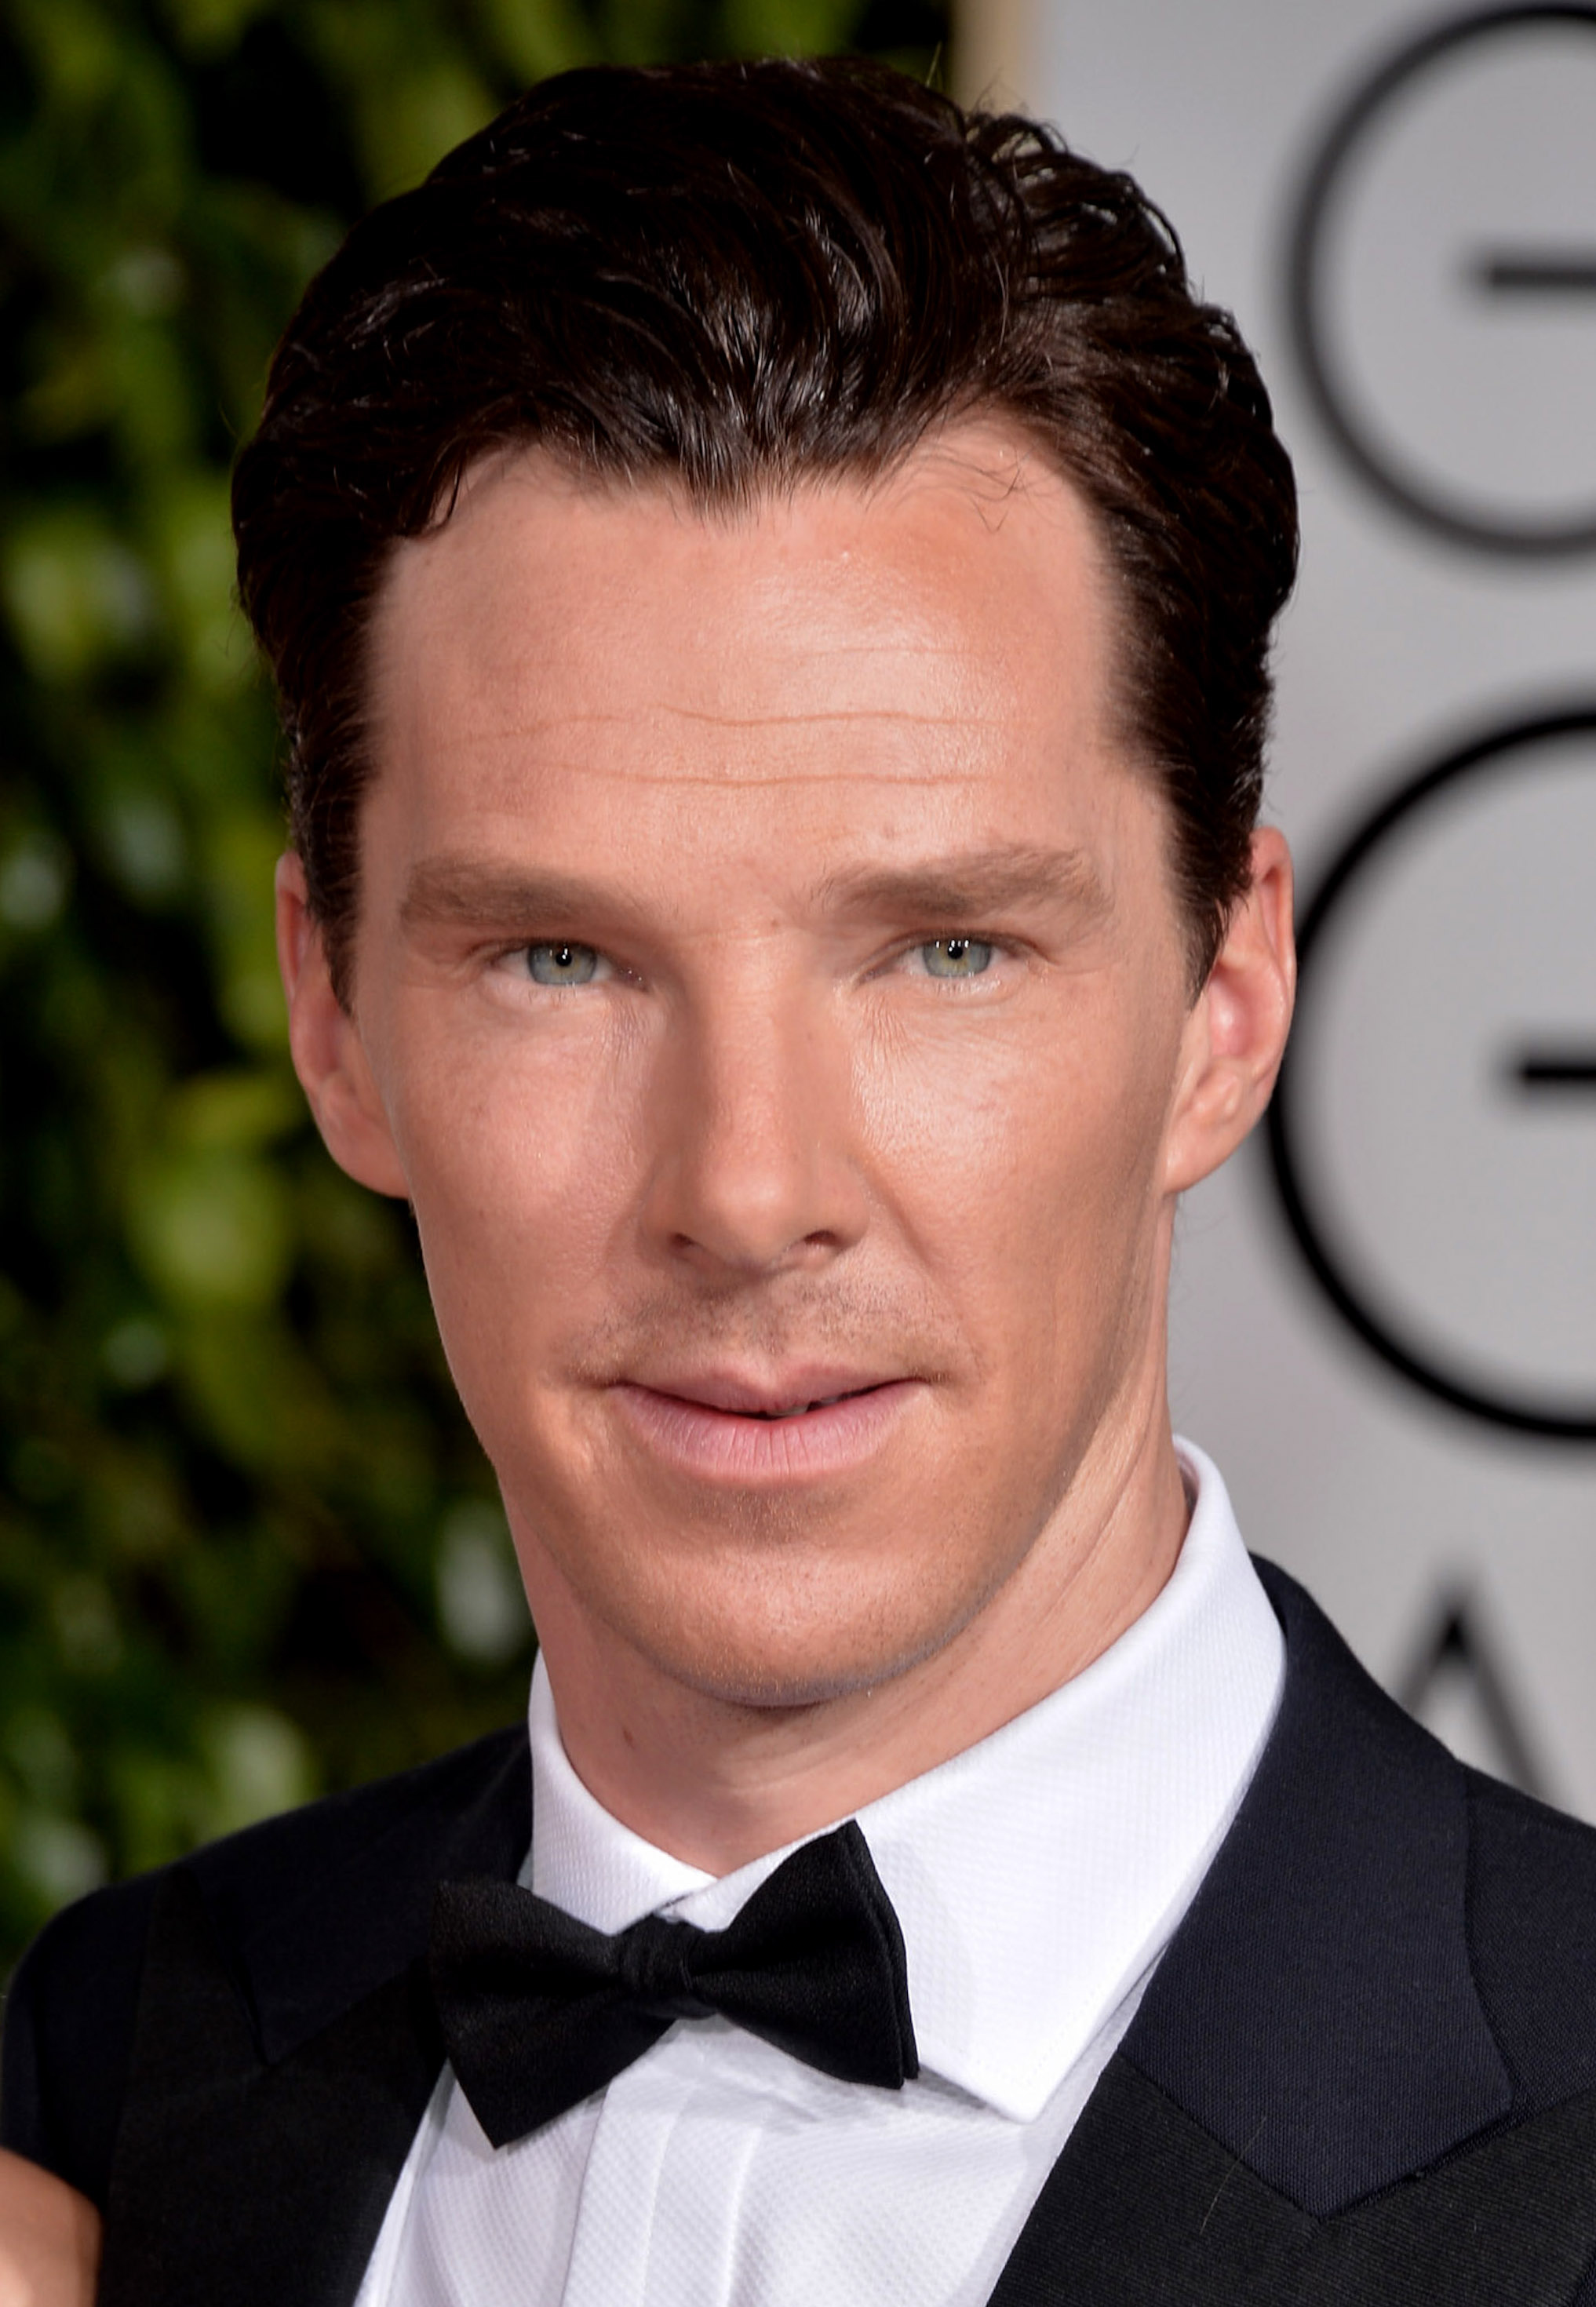 Actor Benedict Cumberbatch attends the 72nd Annual Golden Globe Awards at The Beverly Hilton Hotel on Jan. 11, 2015 in Beverly Hills, Calif.